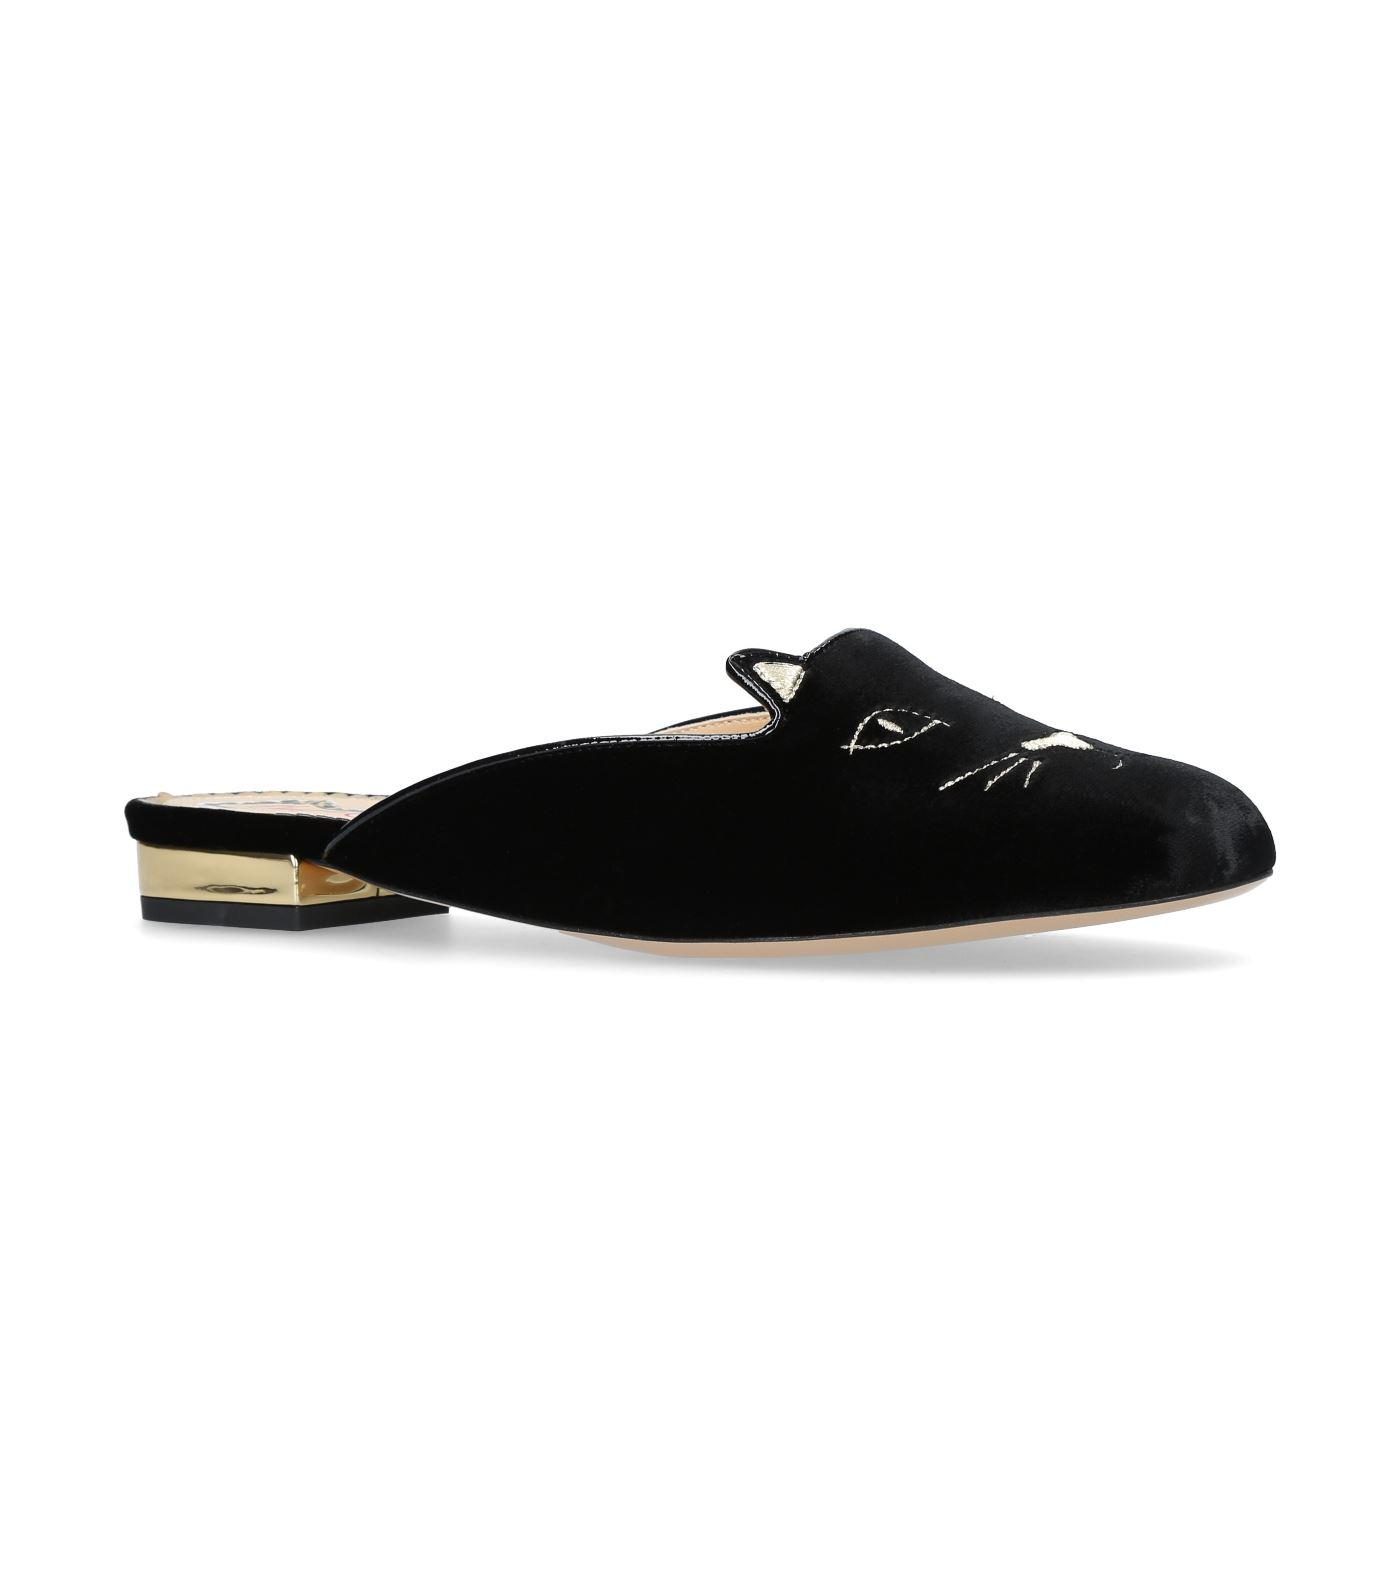 8c59529fc5e Charlotte Olympia Kitty Cat Face-Embroidered Velvet Backless Loafers In  Black